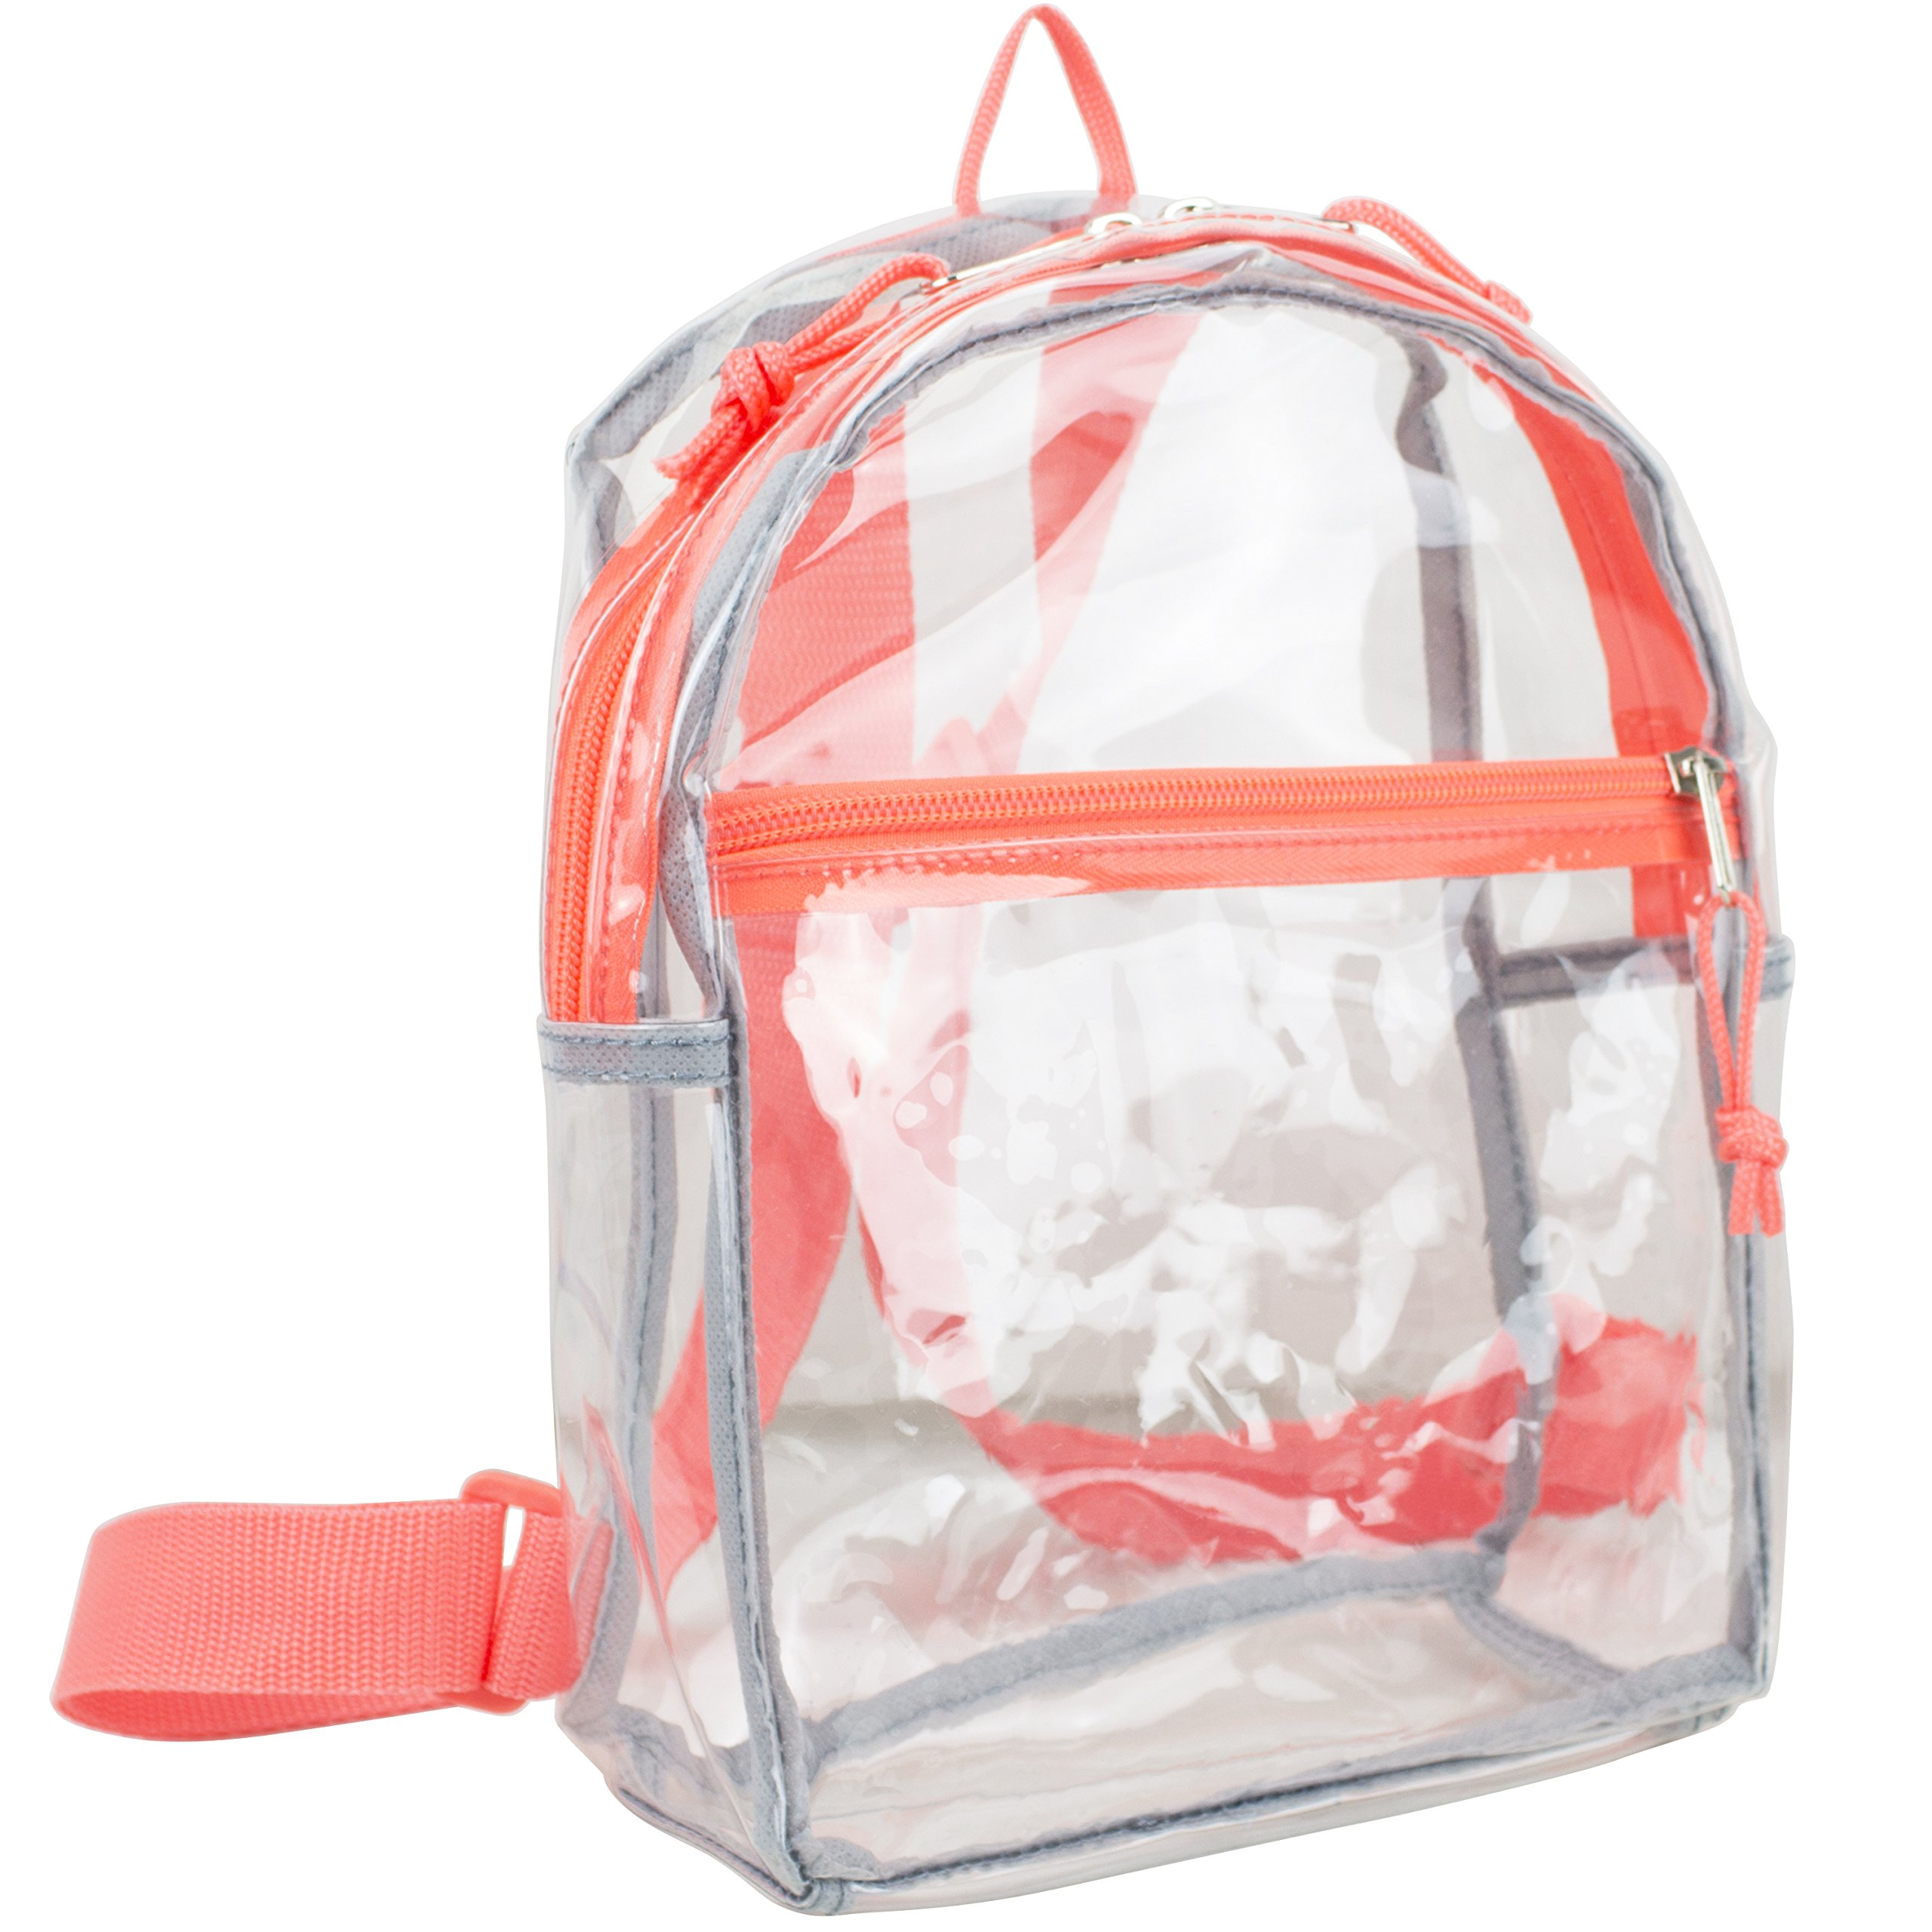 Eastsport 100% Transparent Clear MINI Backpack (10.5 by 8 by 3 Inches) with Adjustable Straps, Clear/Coral